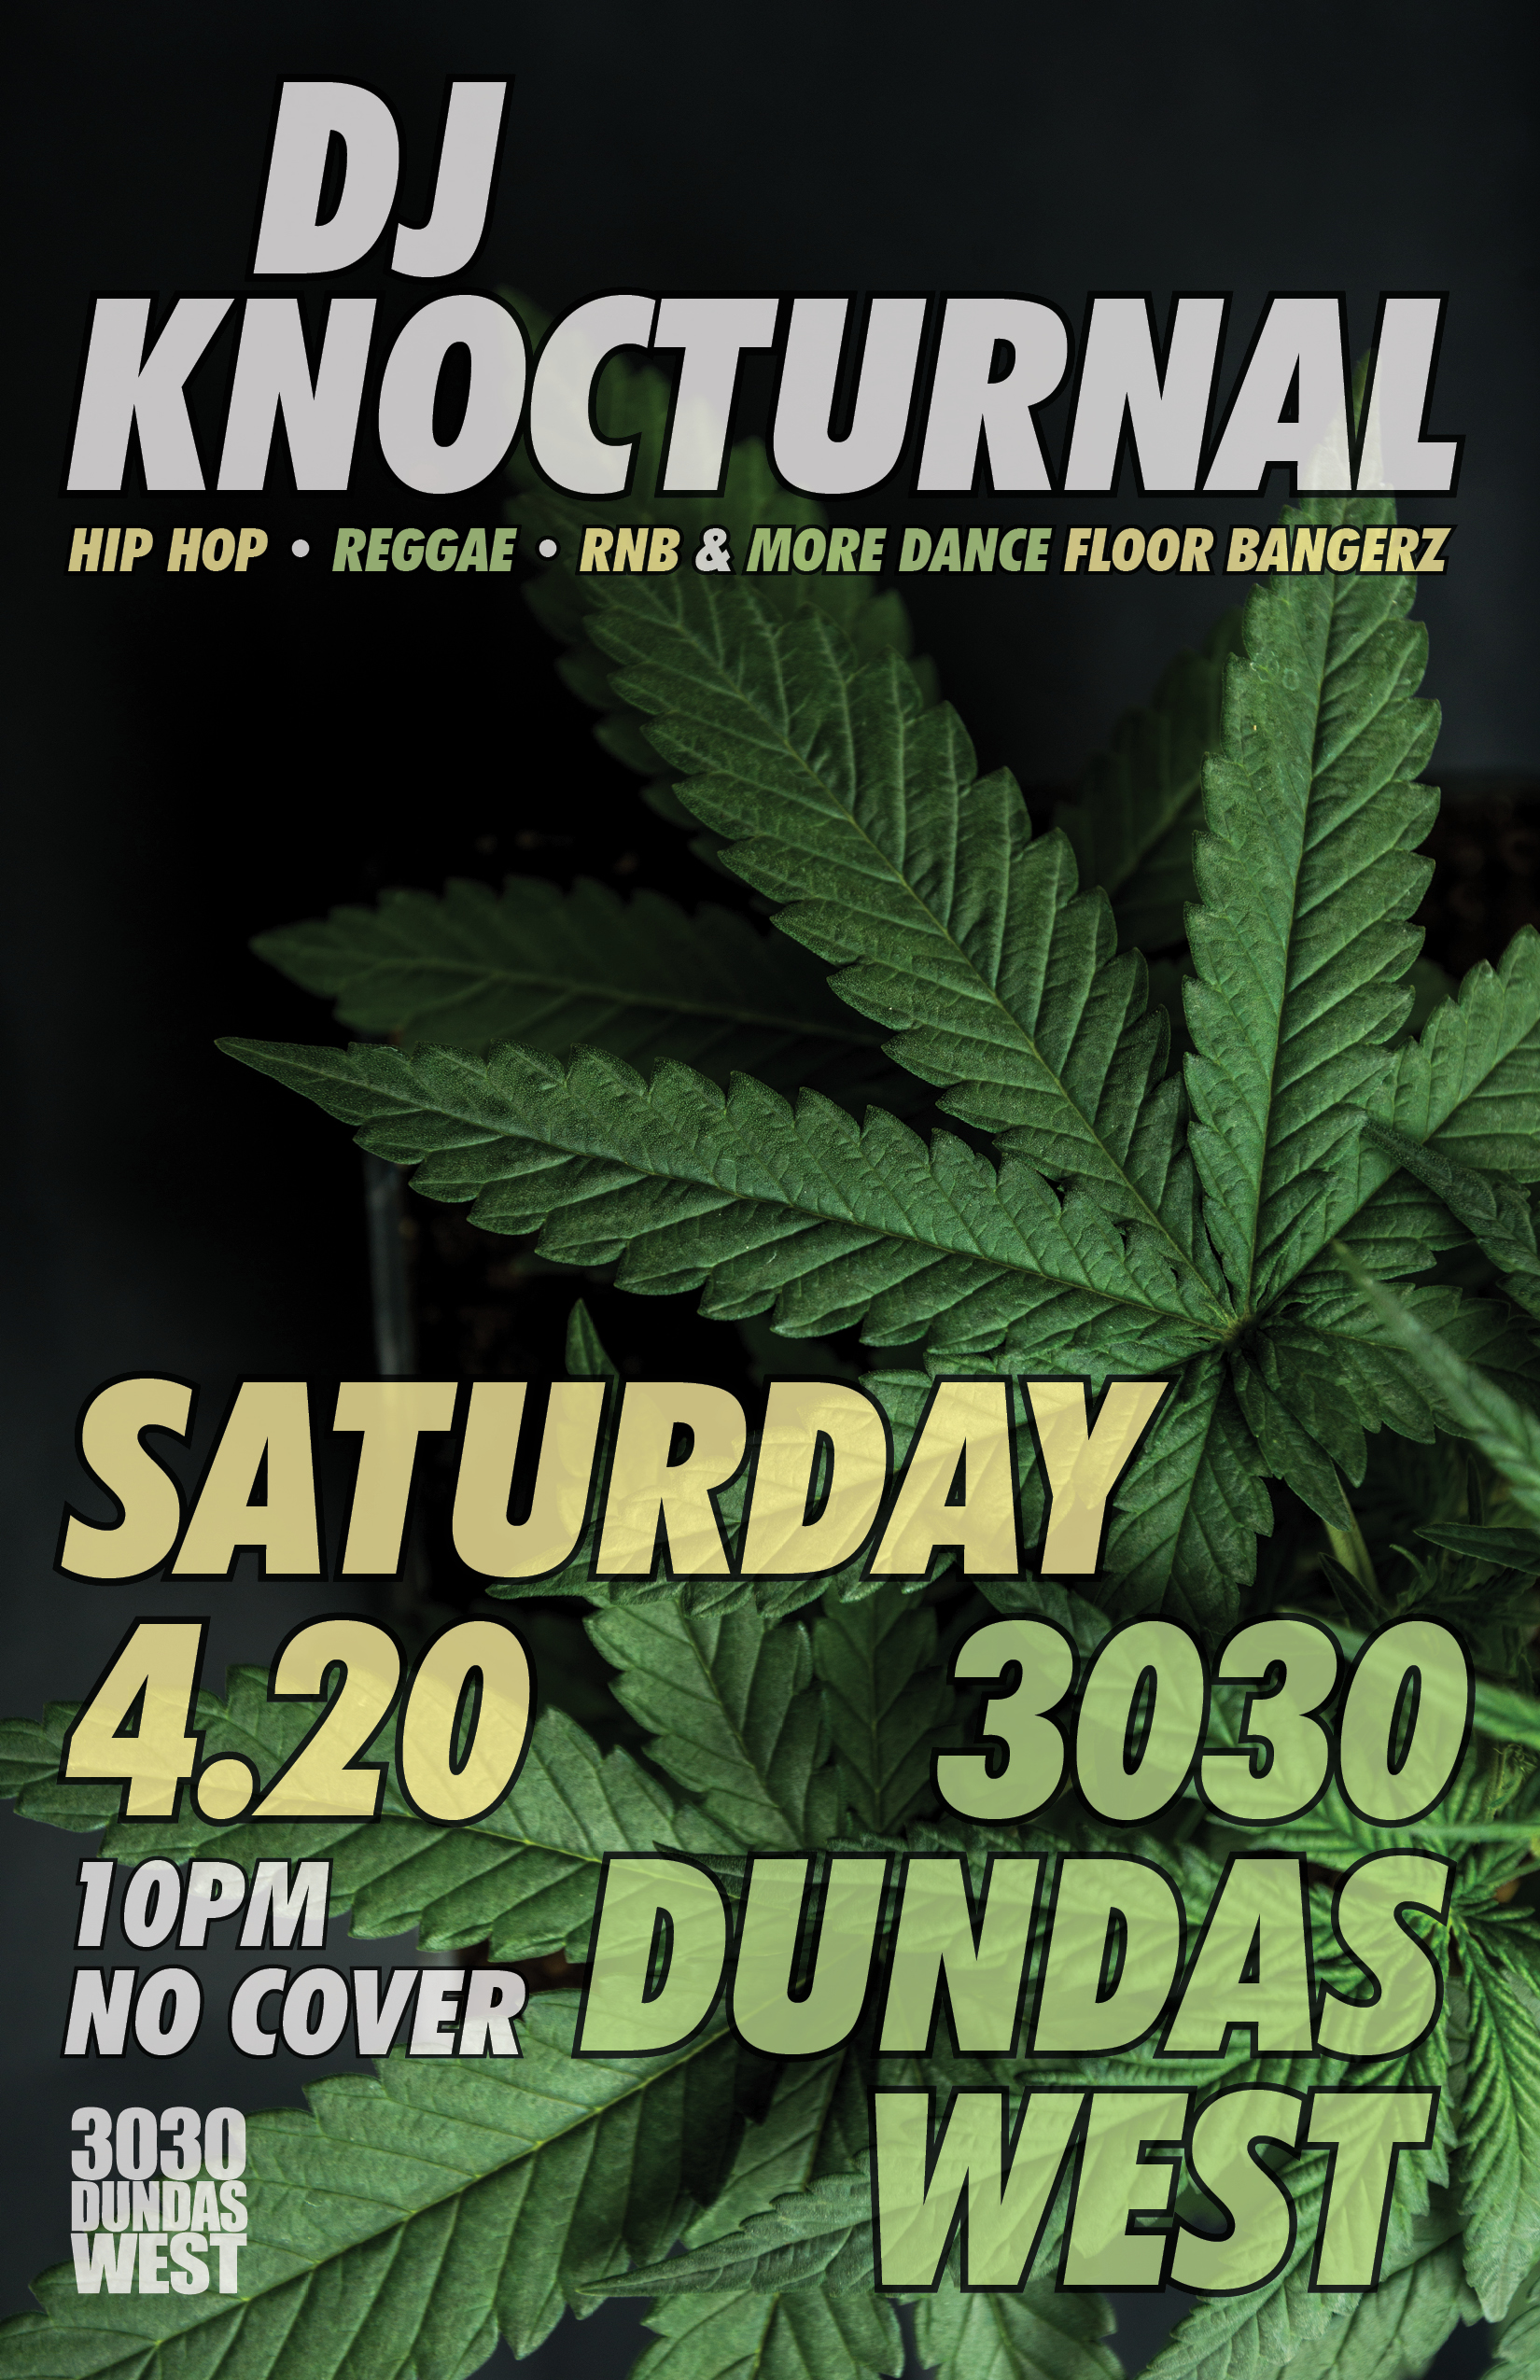 dj_knocturnal_april2019.jpg